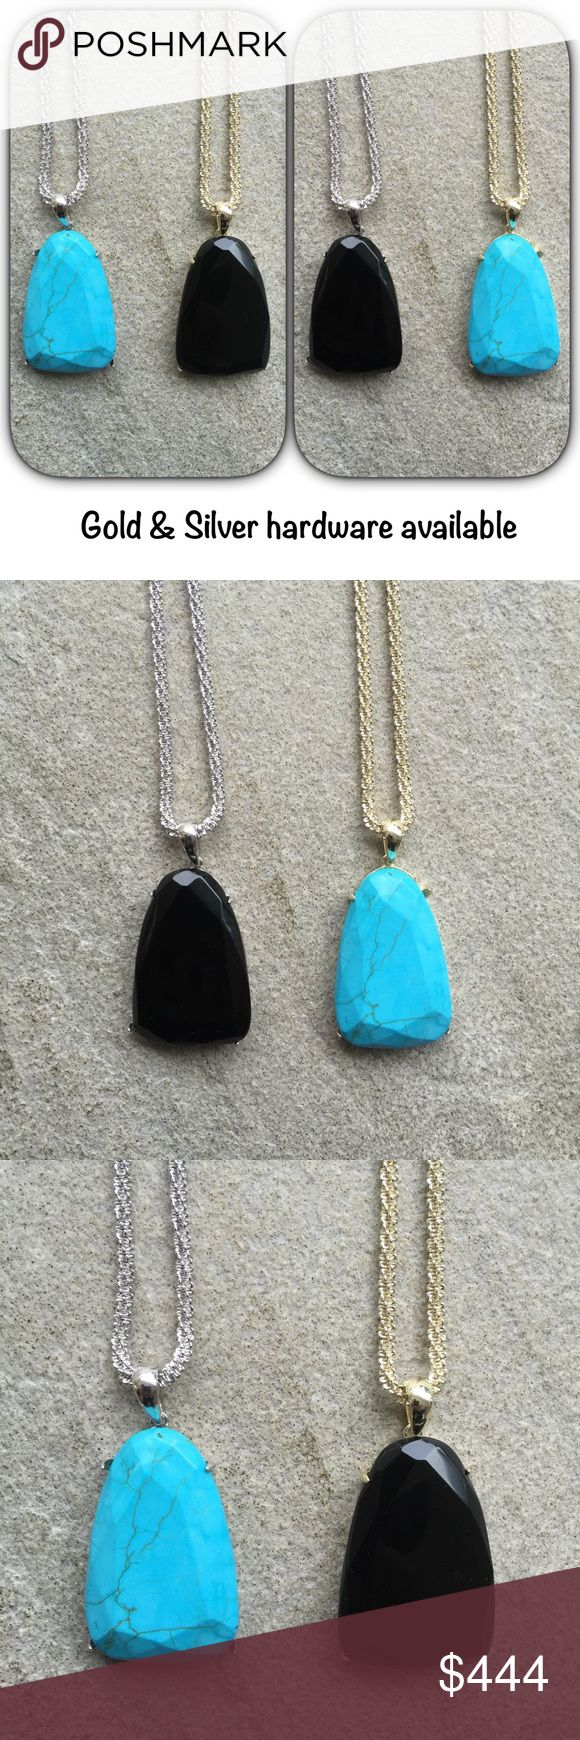 🆕KS Sandra's (both available) Both Sandra's are brand new. The turquoise & black stones are from Harlows. There is also a Rose quartz Sandra stone. First person to buy one can choose which metal hardware they want paired with either stone. The listings is for ONE Sandra ONLY. I will list the second one after this one sells. Will come with dustbag & box. ***Priced for offers. Please use the offer button and I will not talk price in the comments. Thanks! Kendra Scott Jewelry Necklaces